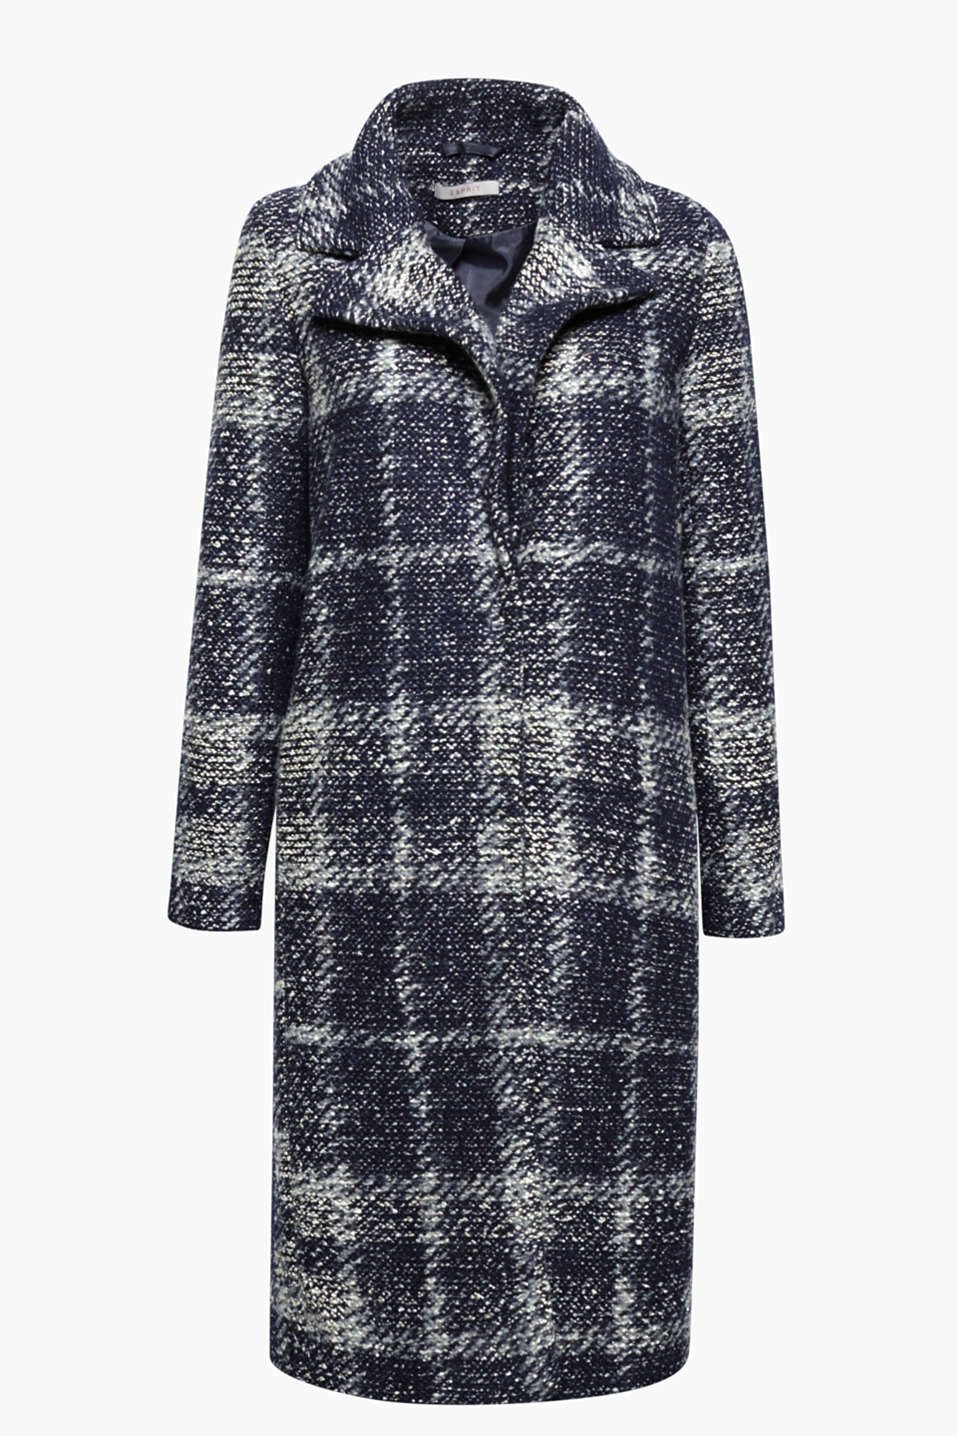 This long bouclé coat with a fashionable check pattern is perfect for between the seasons or as an indoor winter piece!